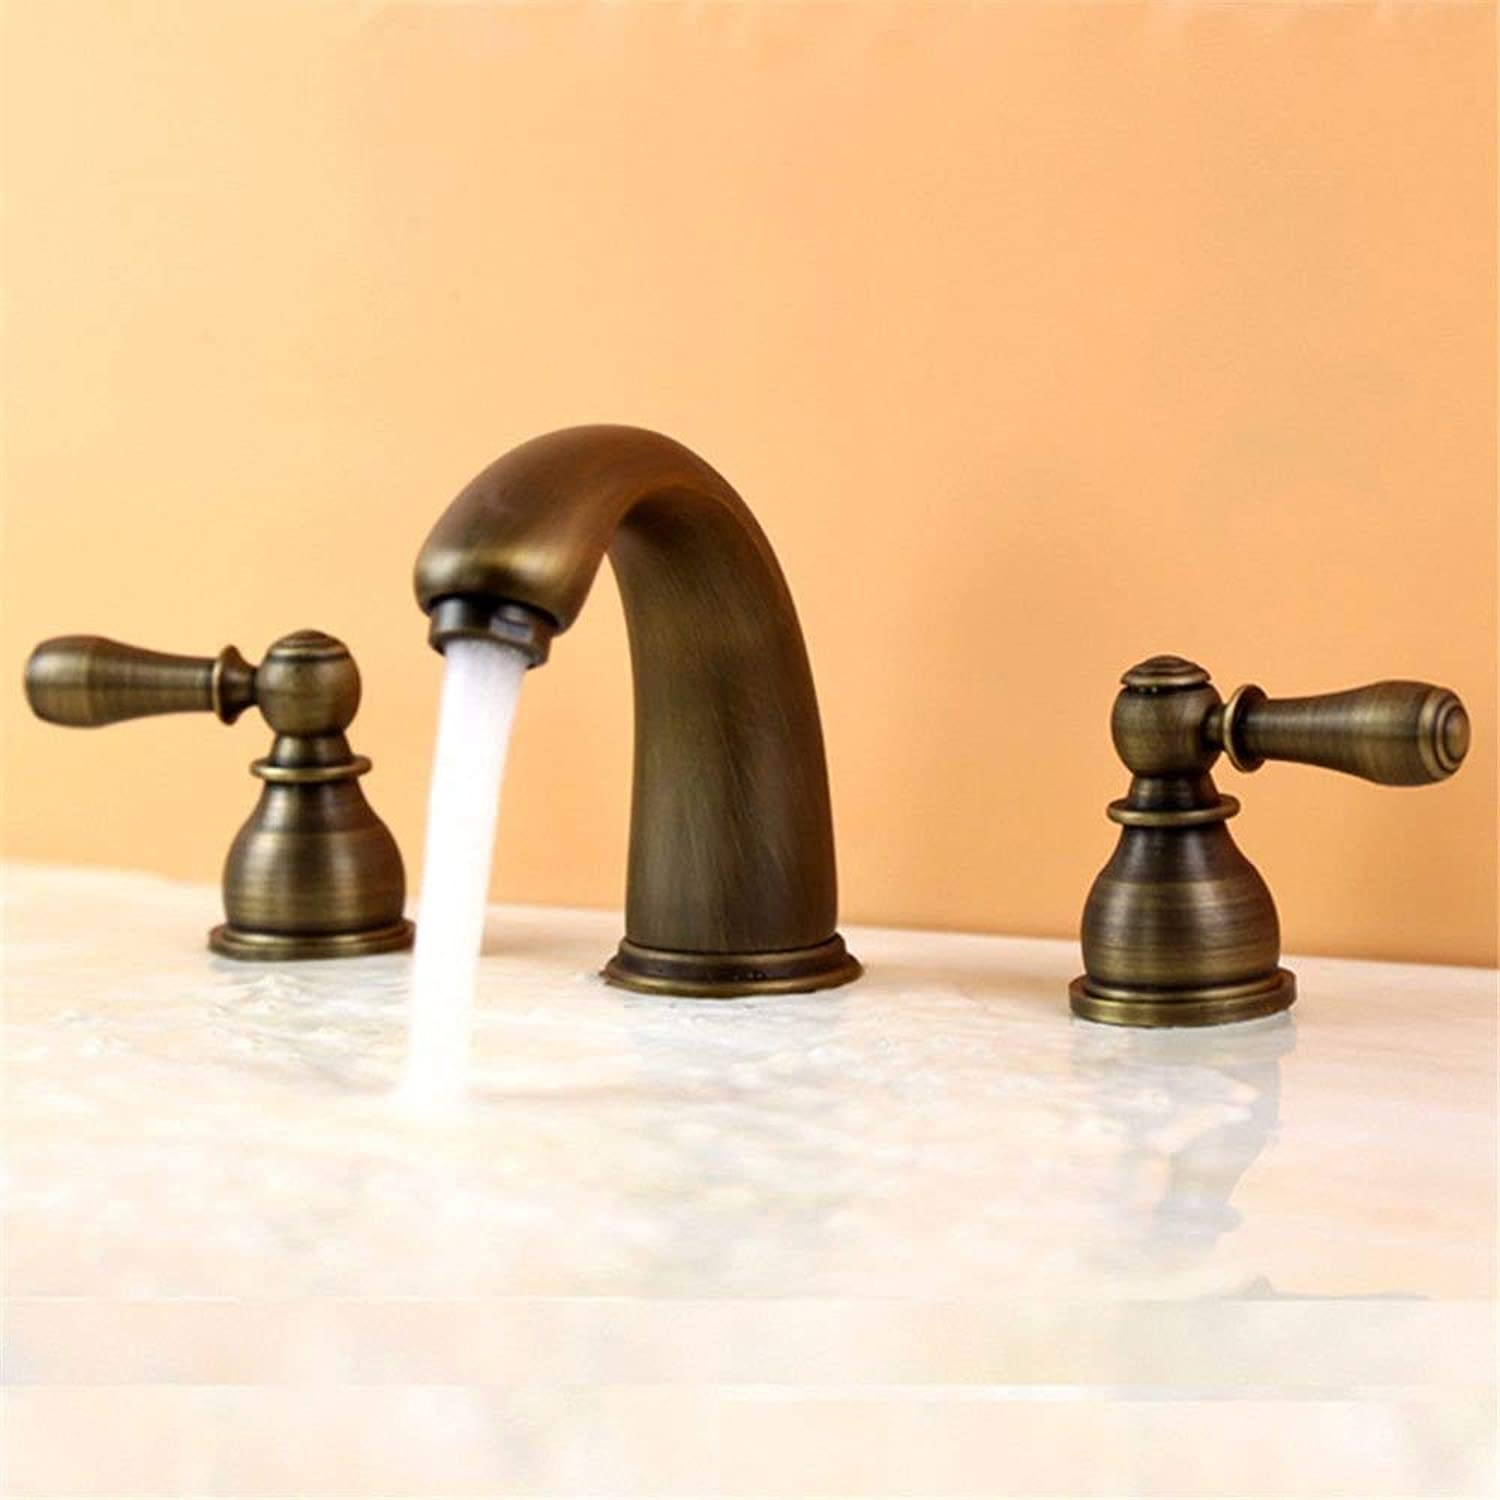 DOJOF Bathroom Sink Mixer Tap Retro Antique Brass Hot and Cold Water Taps for Bathroom Sink